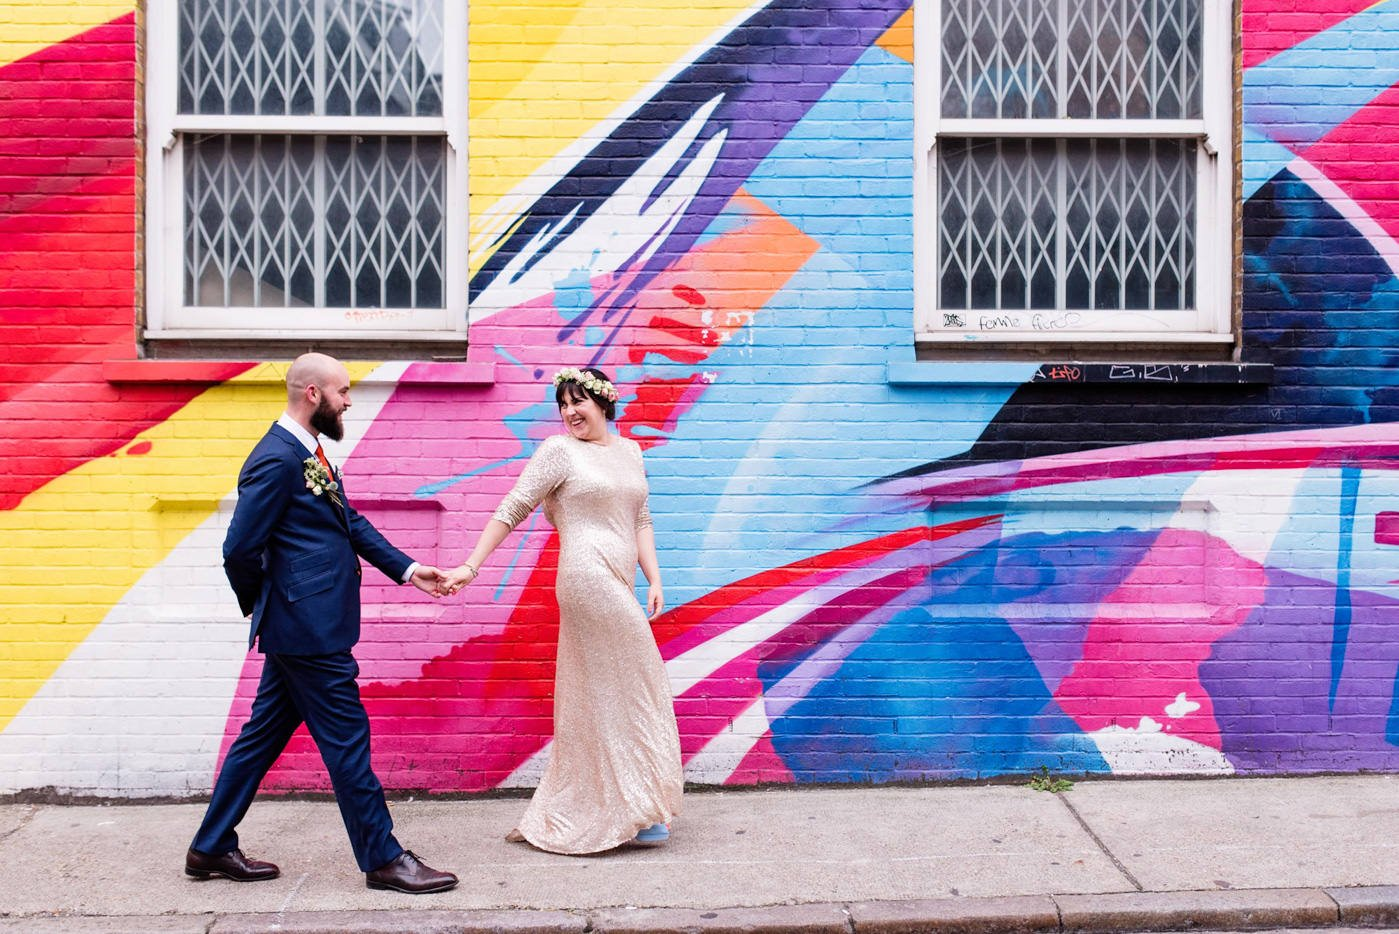 Wedding couple in front of colourful wall shoreditch